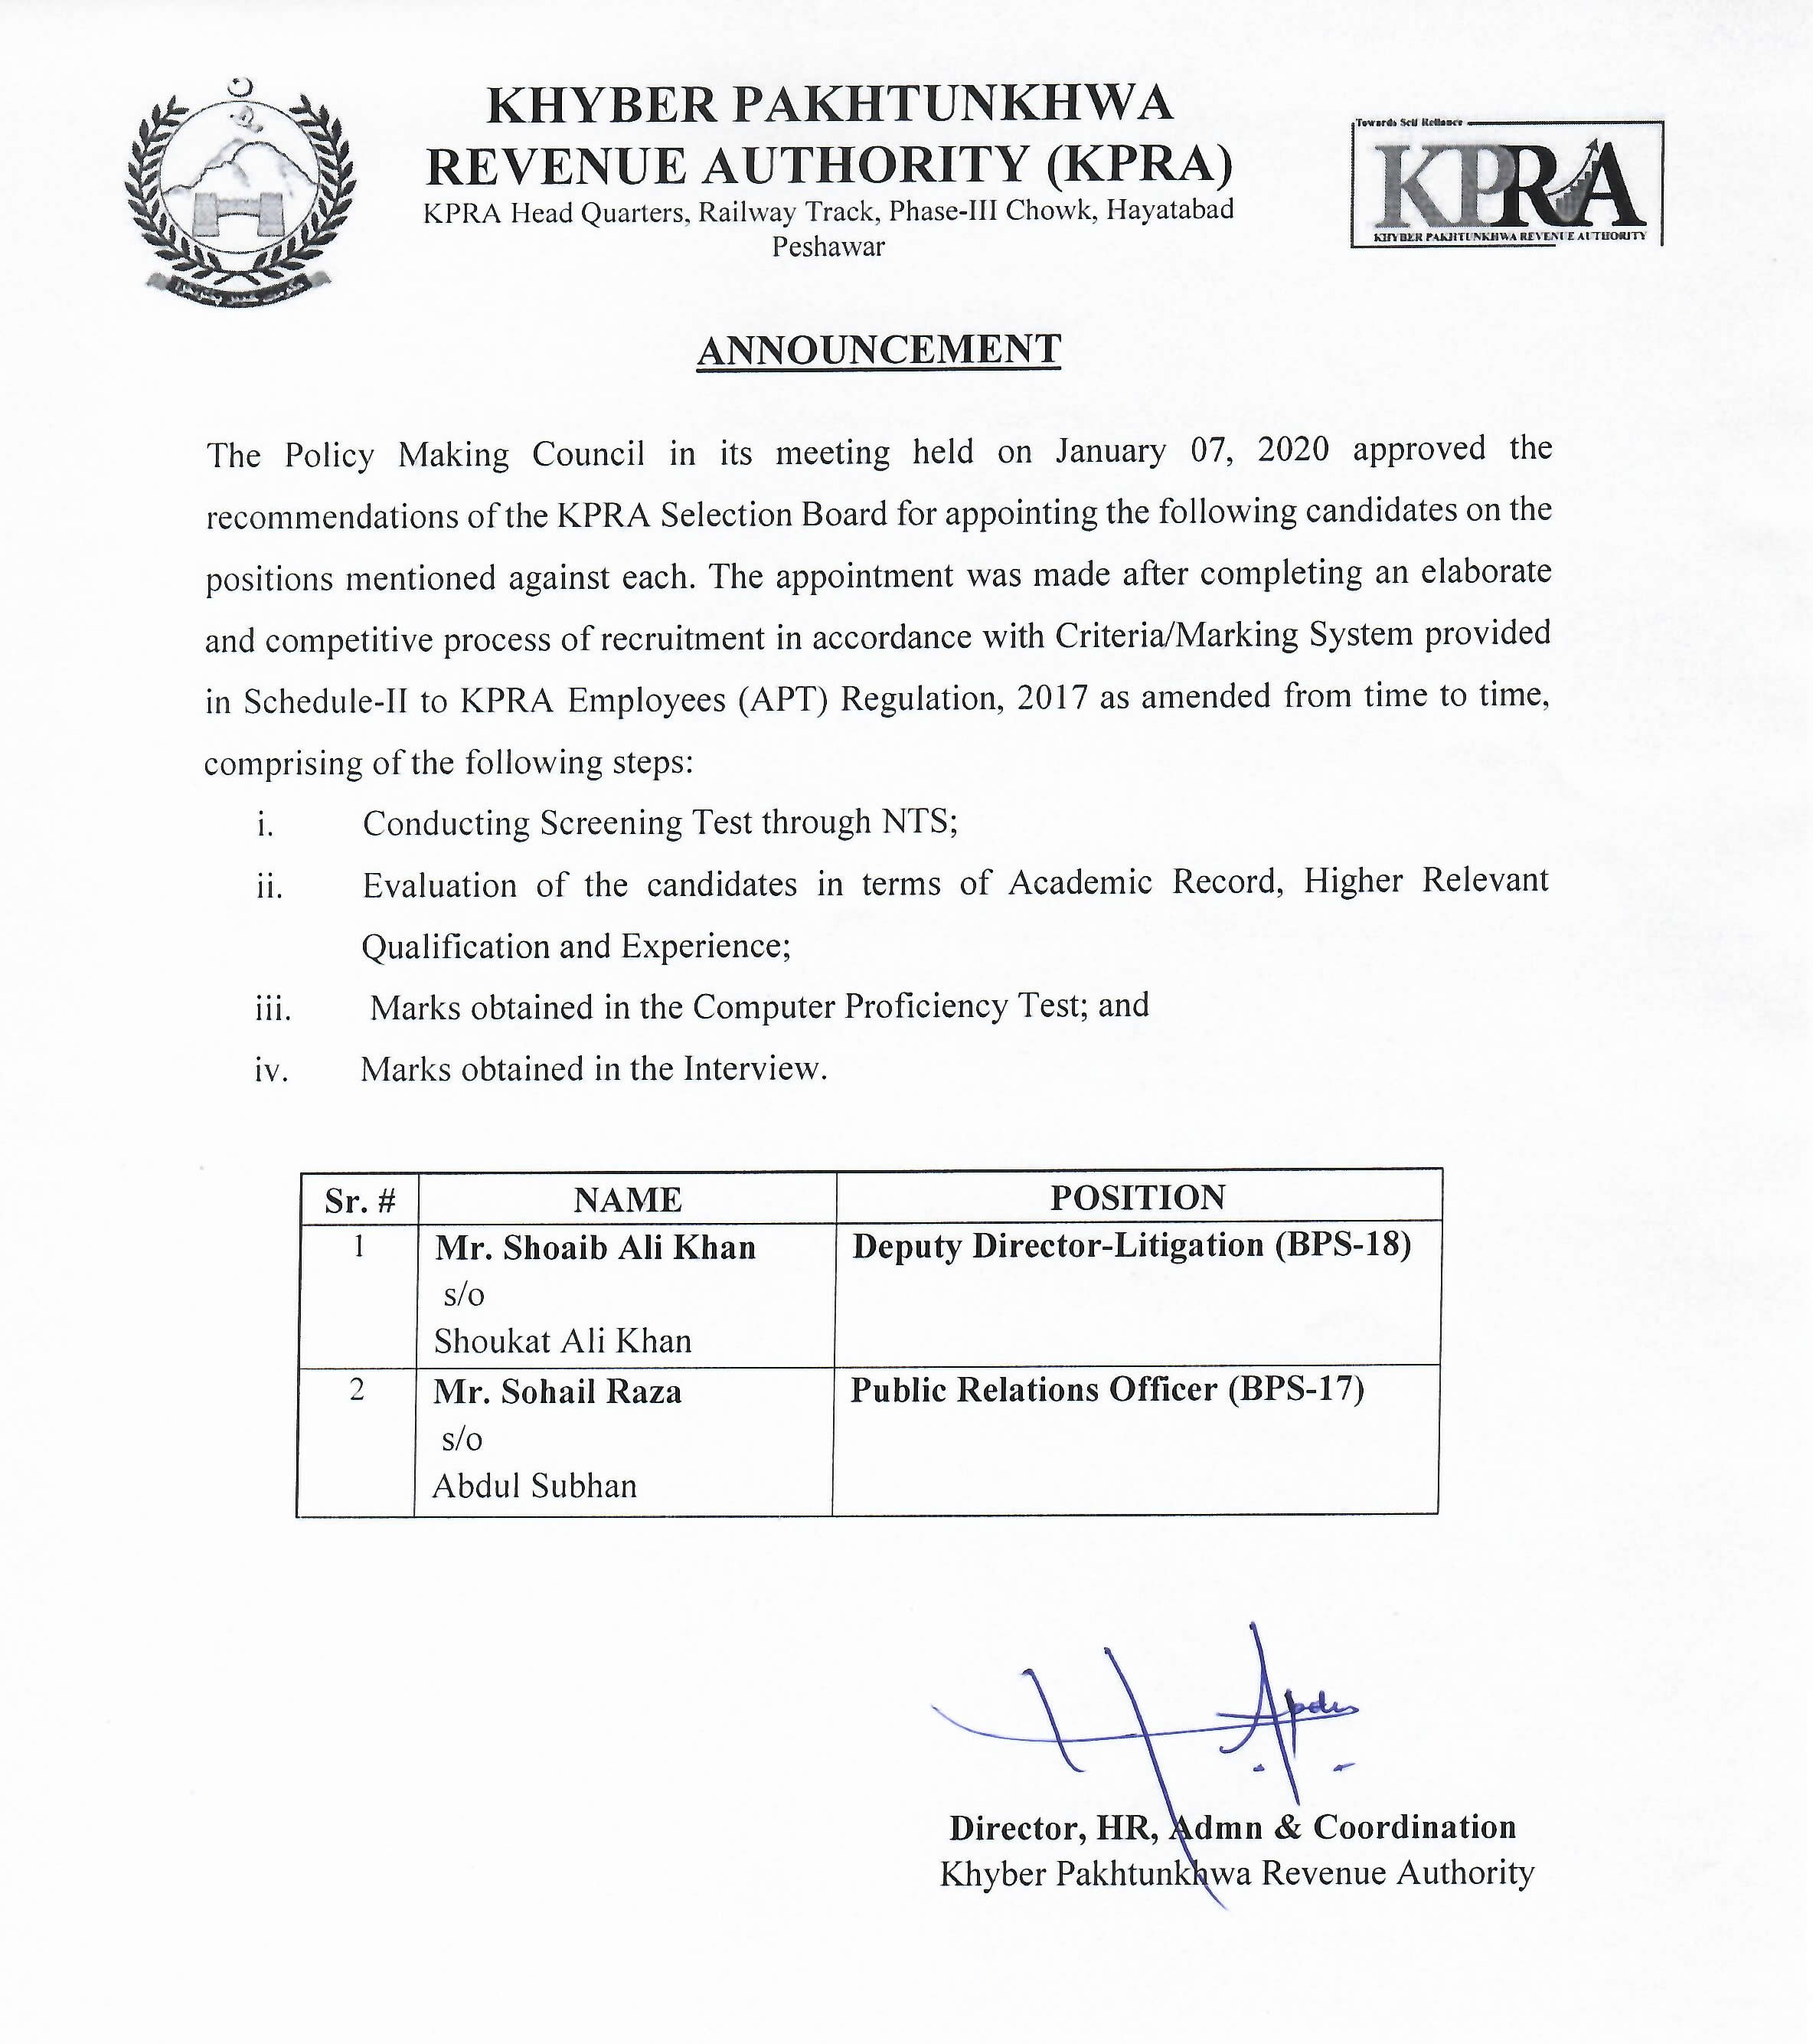 Announcement of Selected Candidates for various posts